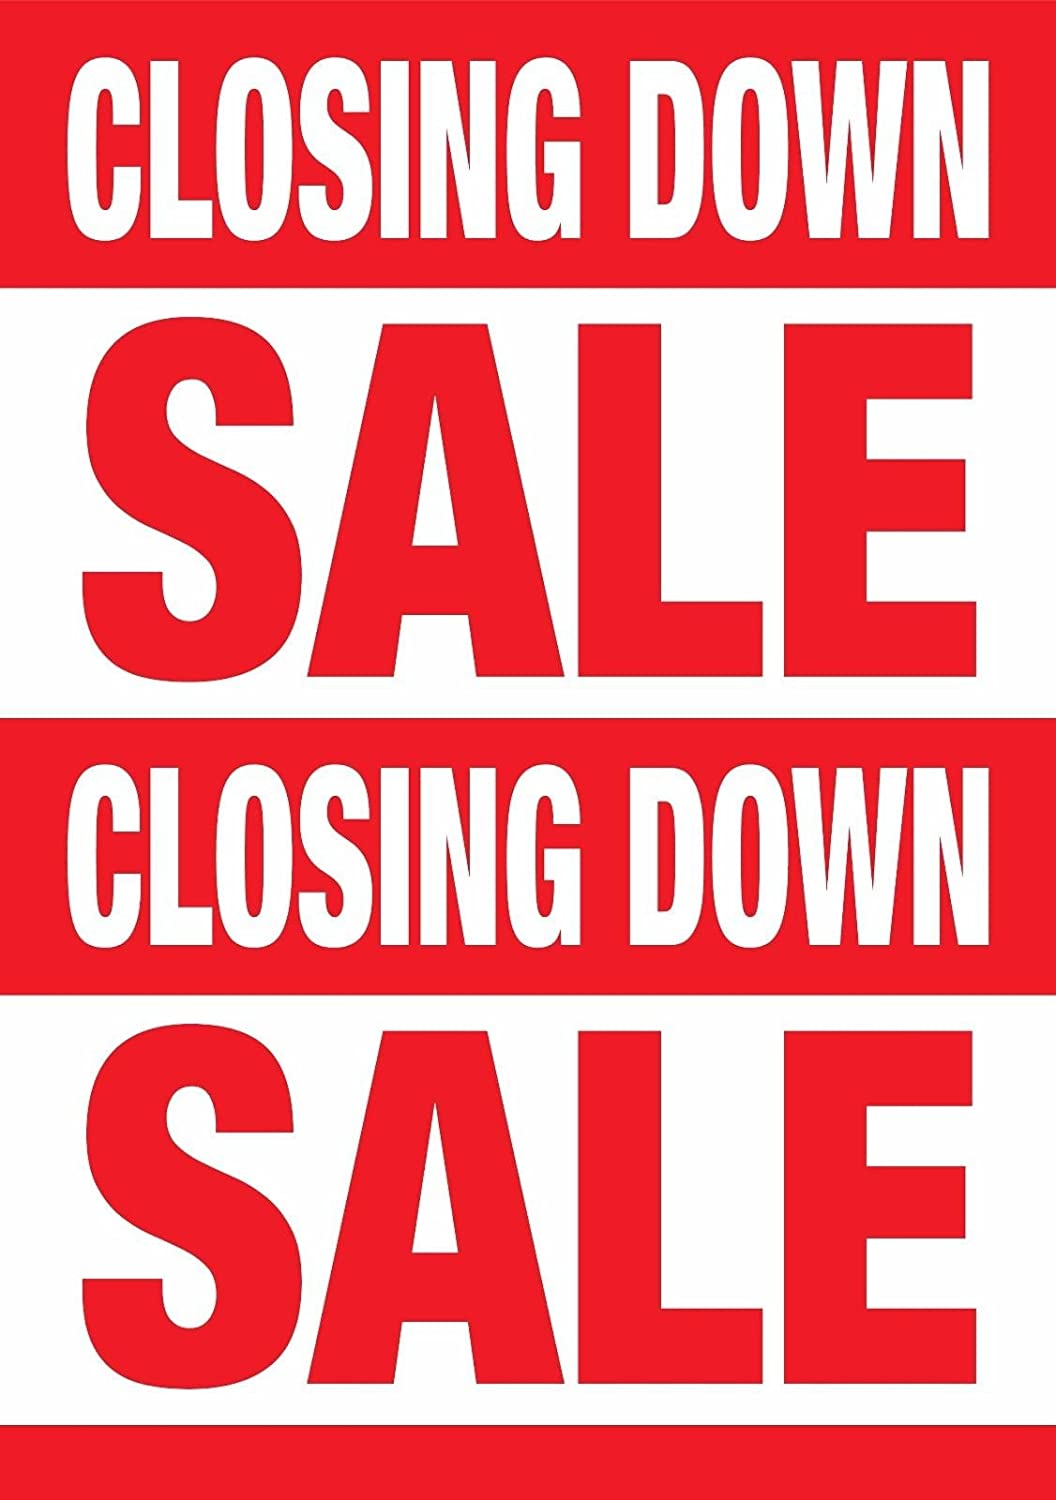 Printed Closing Down Sale Posters Window Sign Size A1